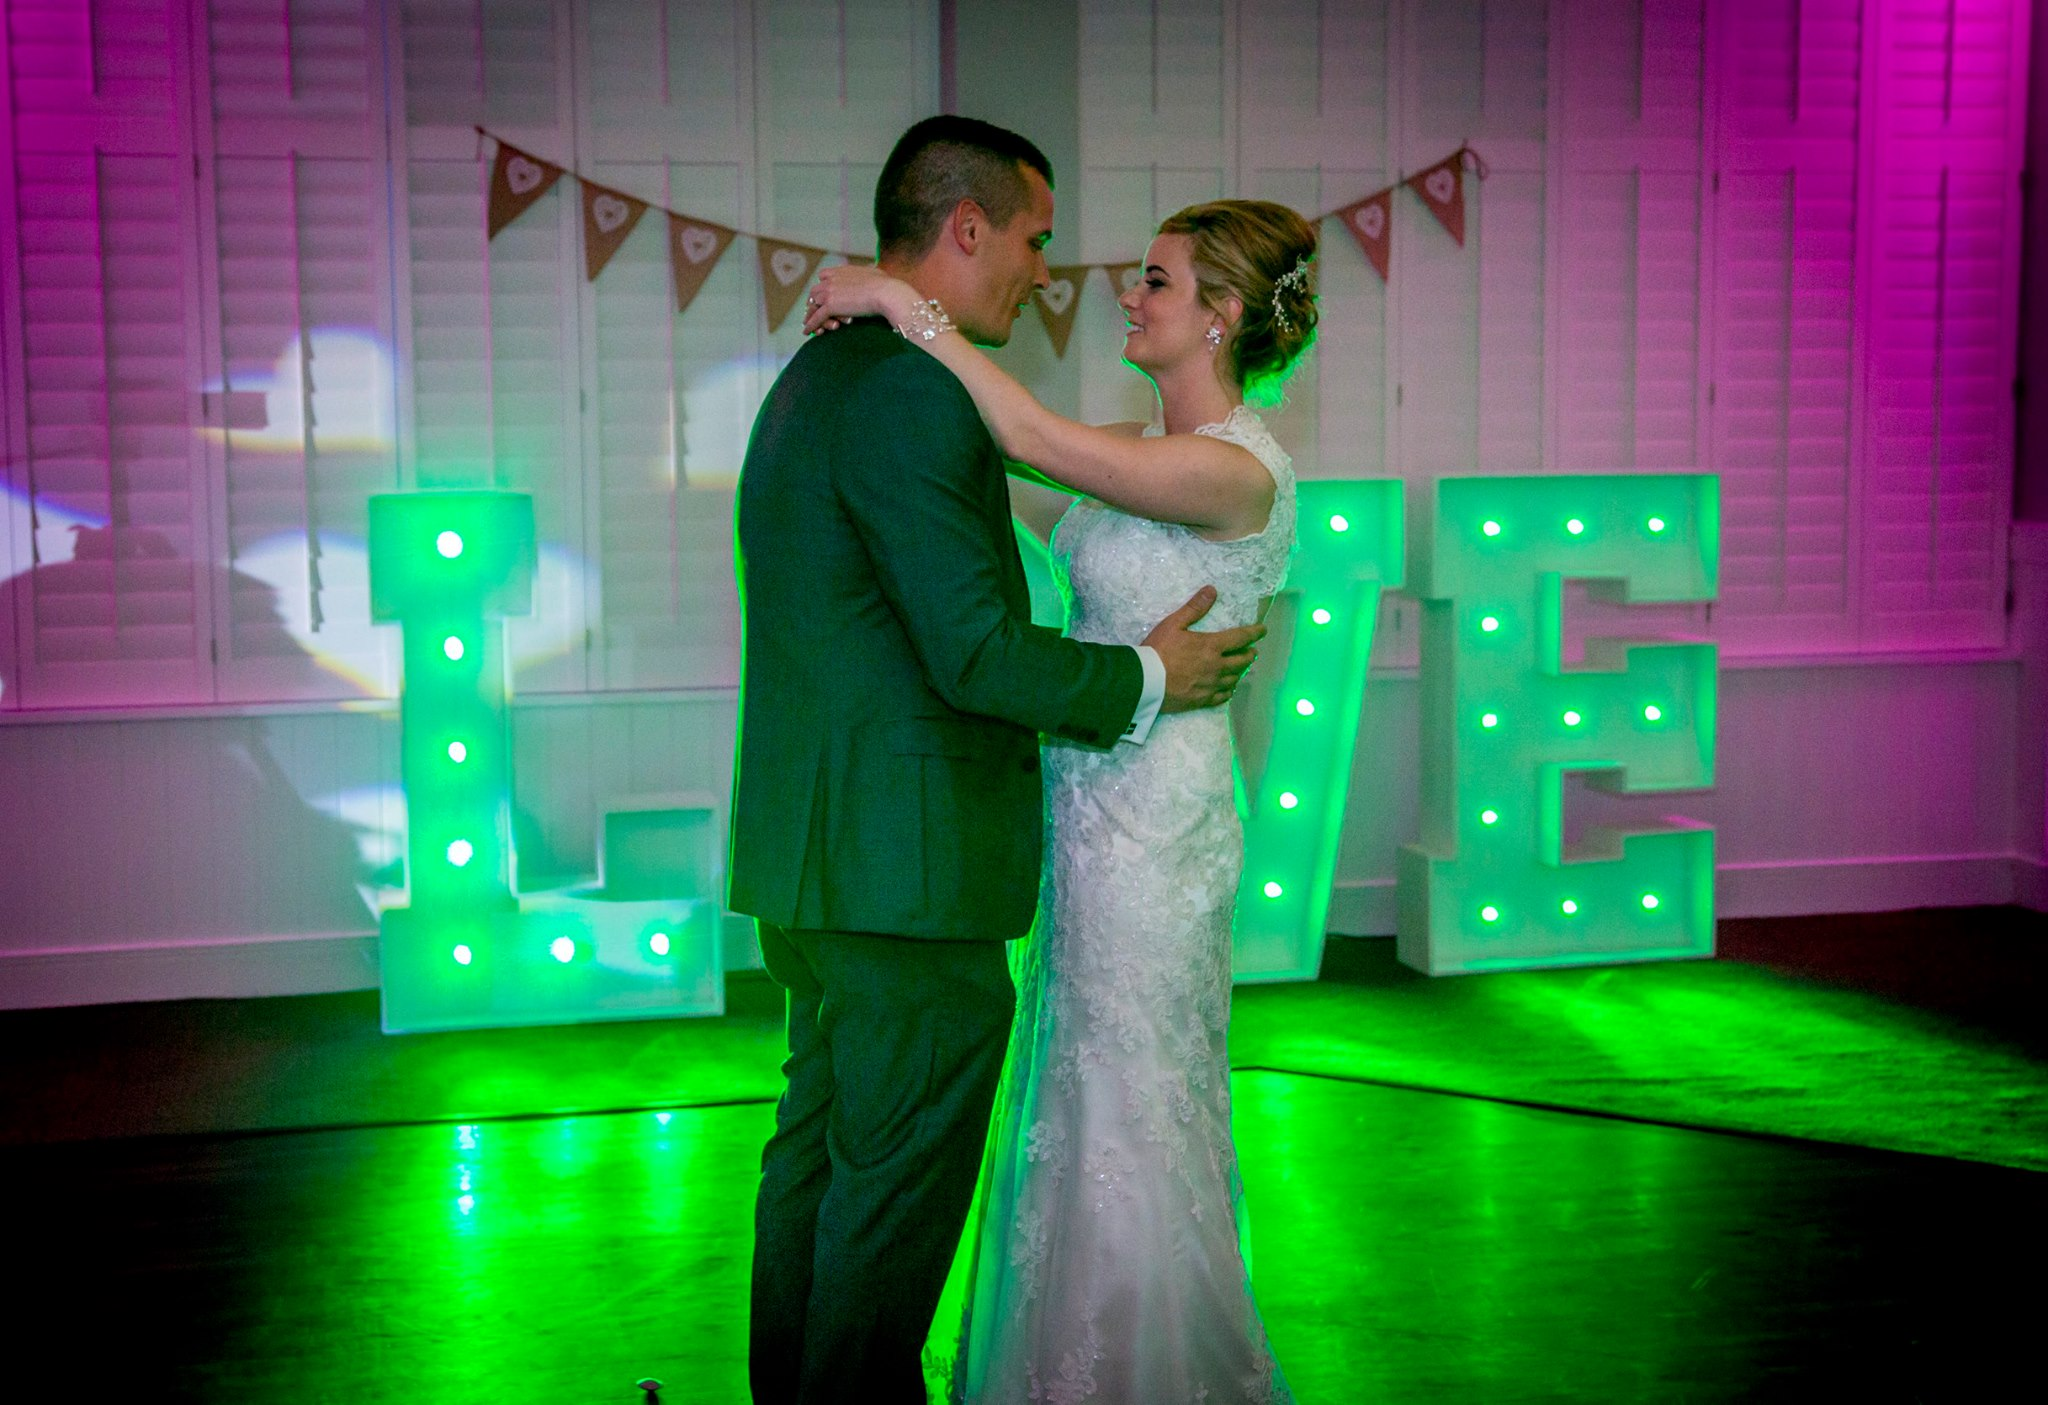 cornwall wedding disco dj photographer 17